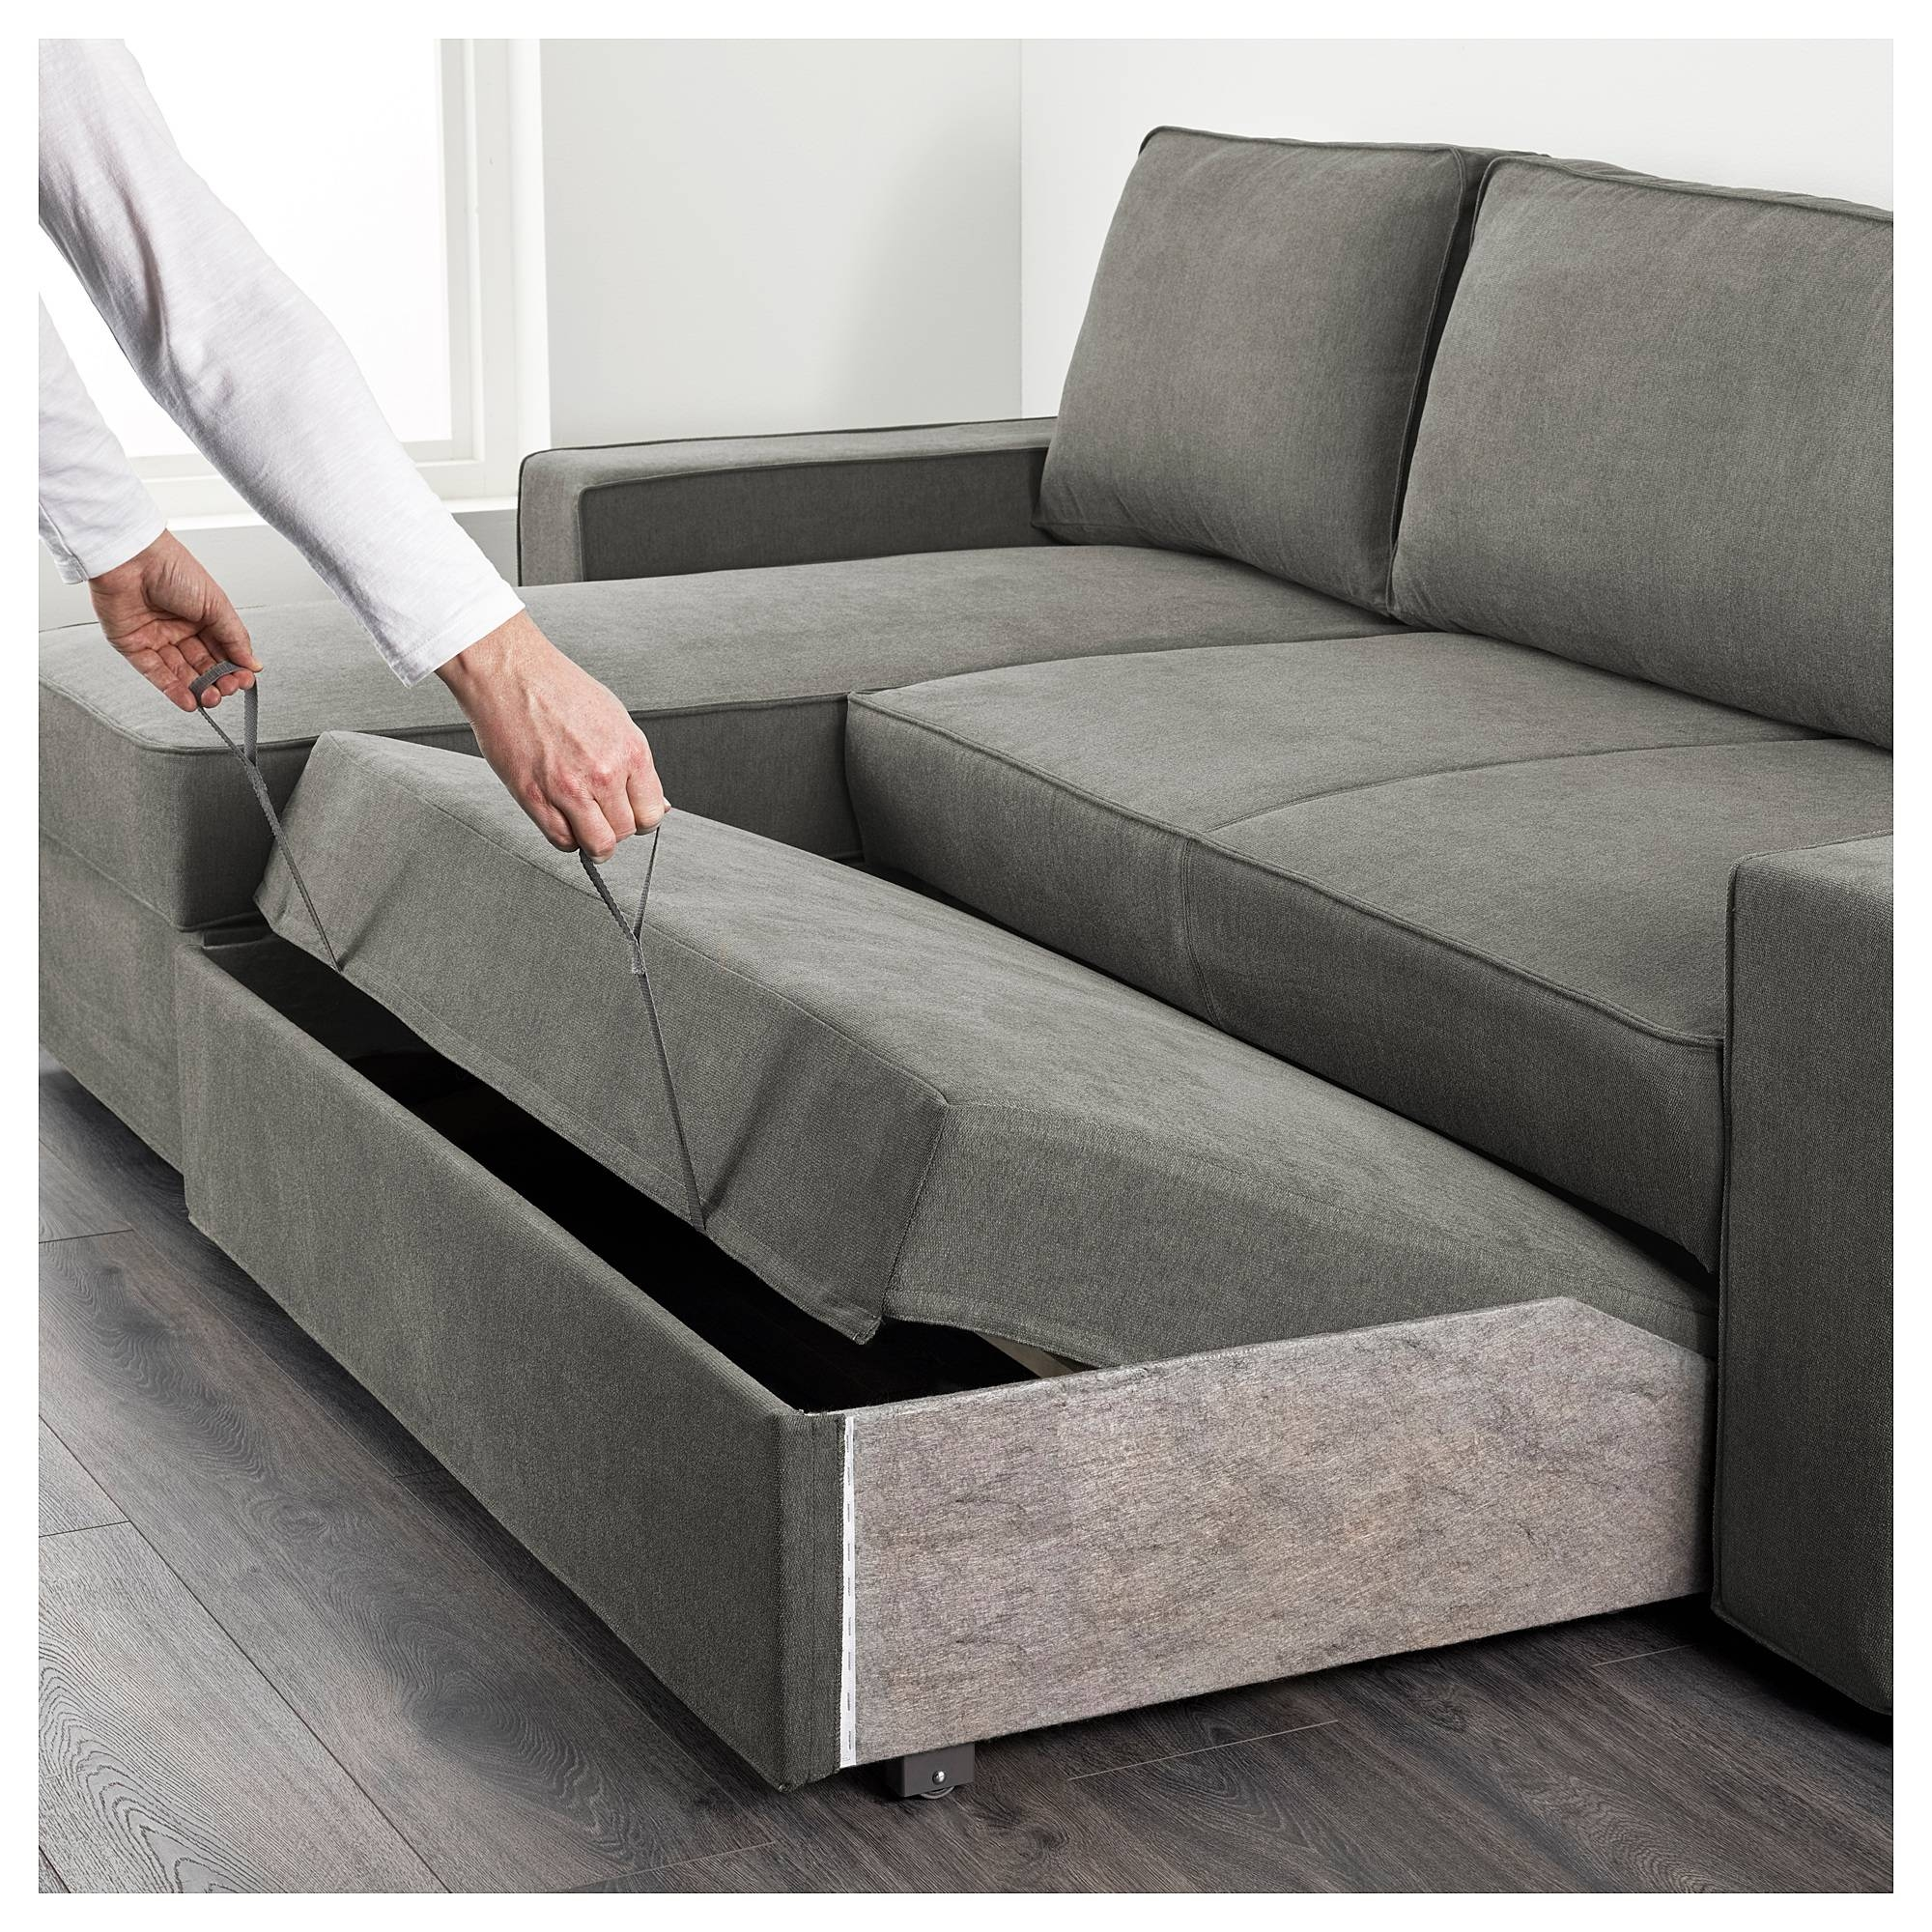 Vilasund Sofa Bed With Chaise Longue Borred Grey-Green - Ikea with Sofa Beds With Chaise Lounge (Image 15 of 15)